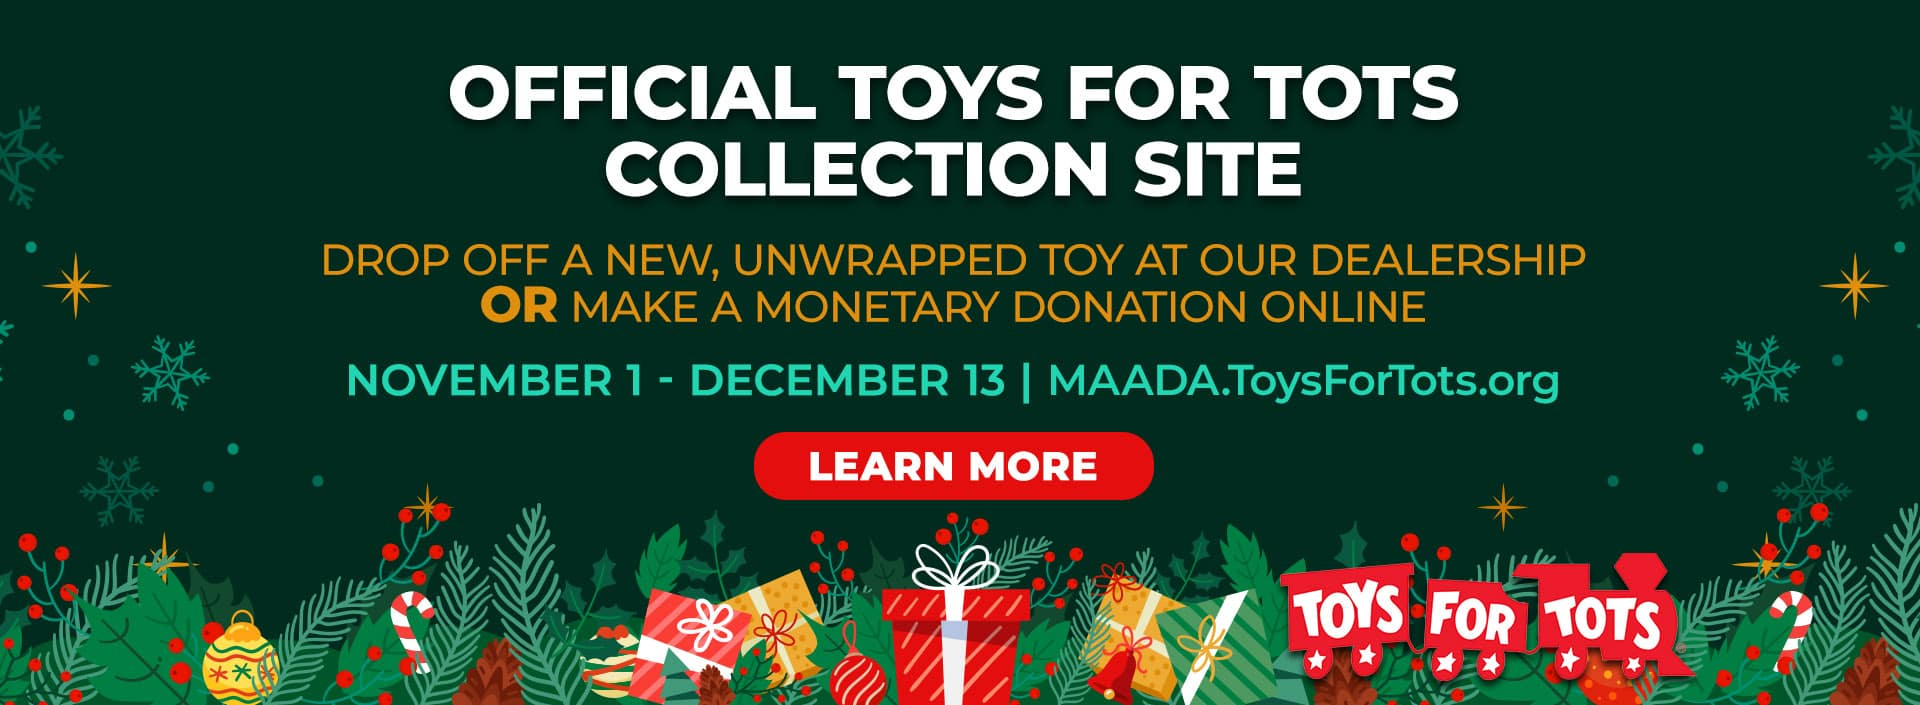 Donate to Toys for Tots in Atlanta, GA at Ed Voyles Kia of Chamblee